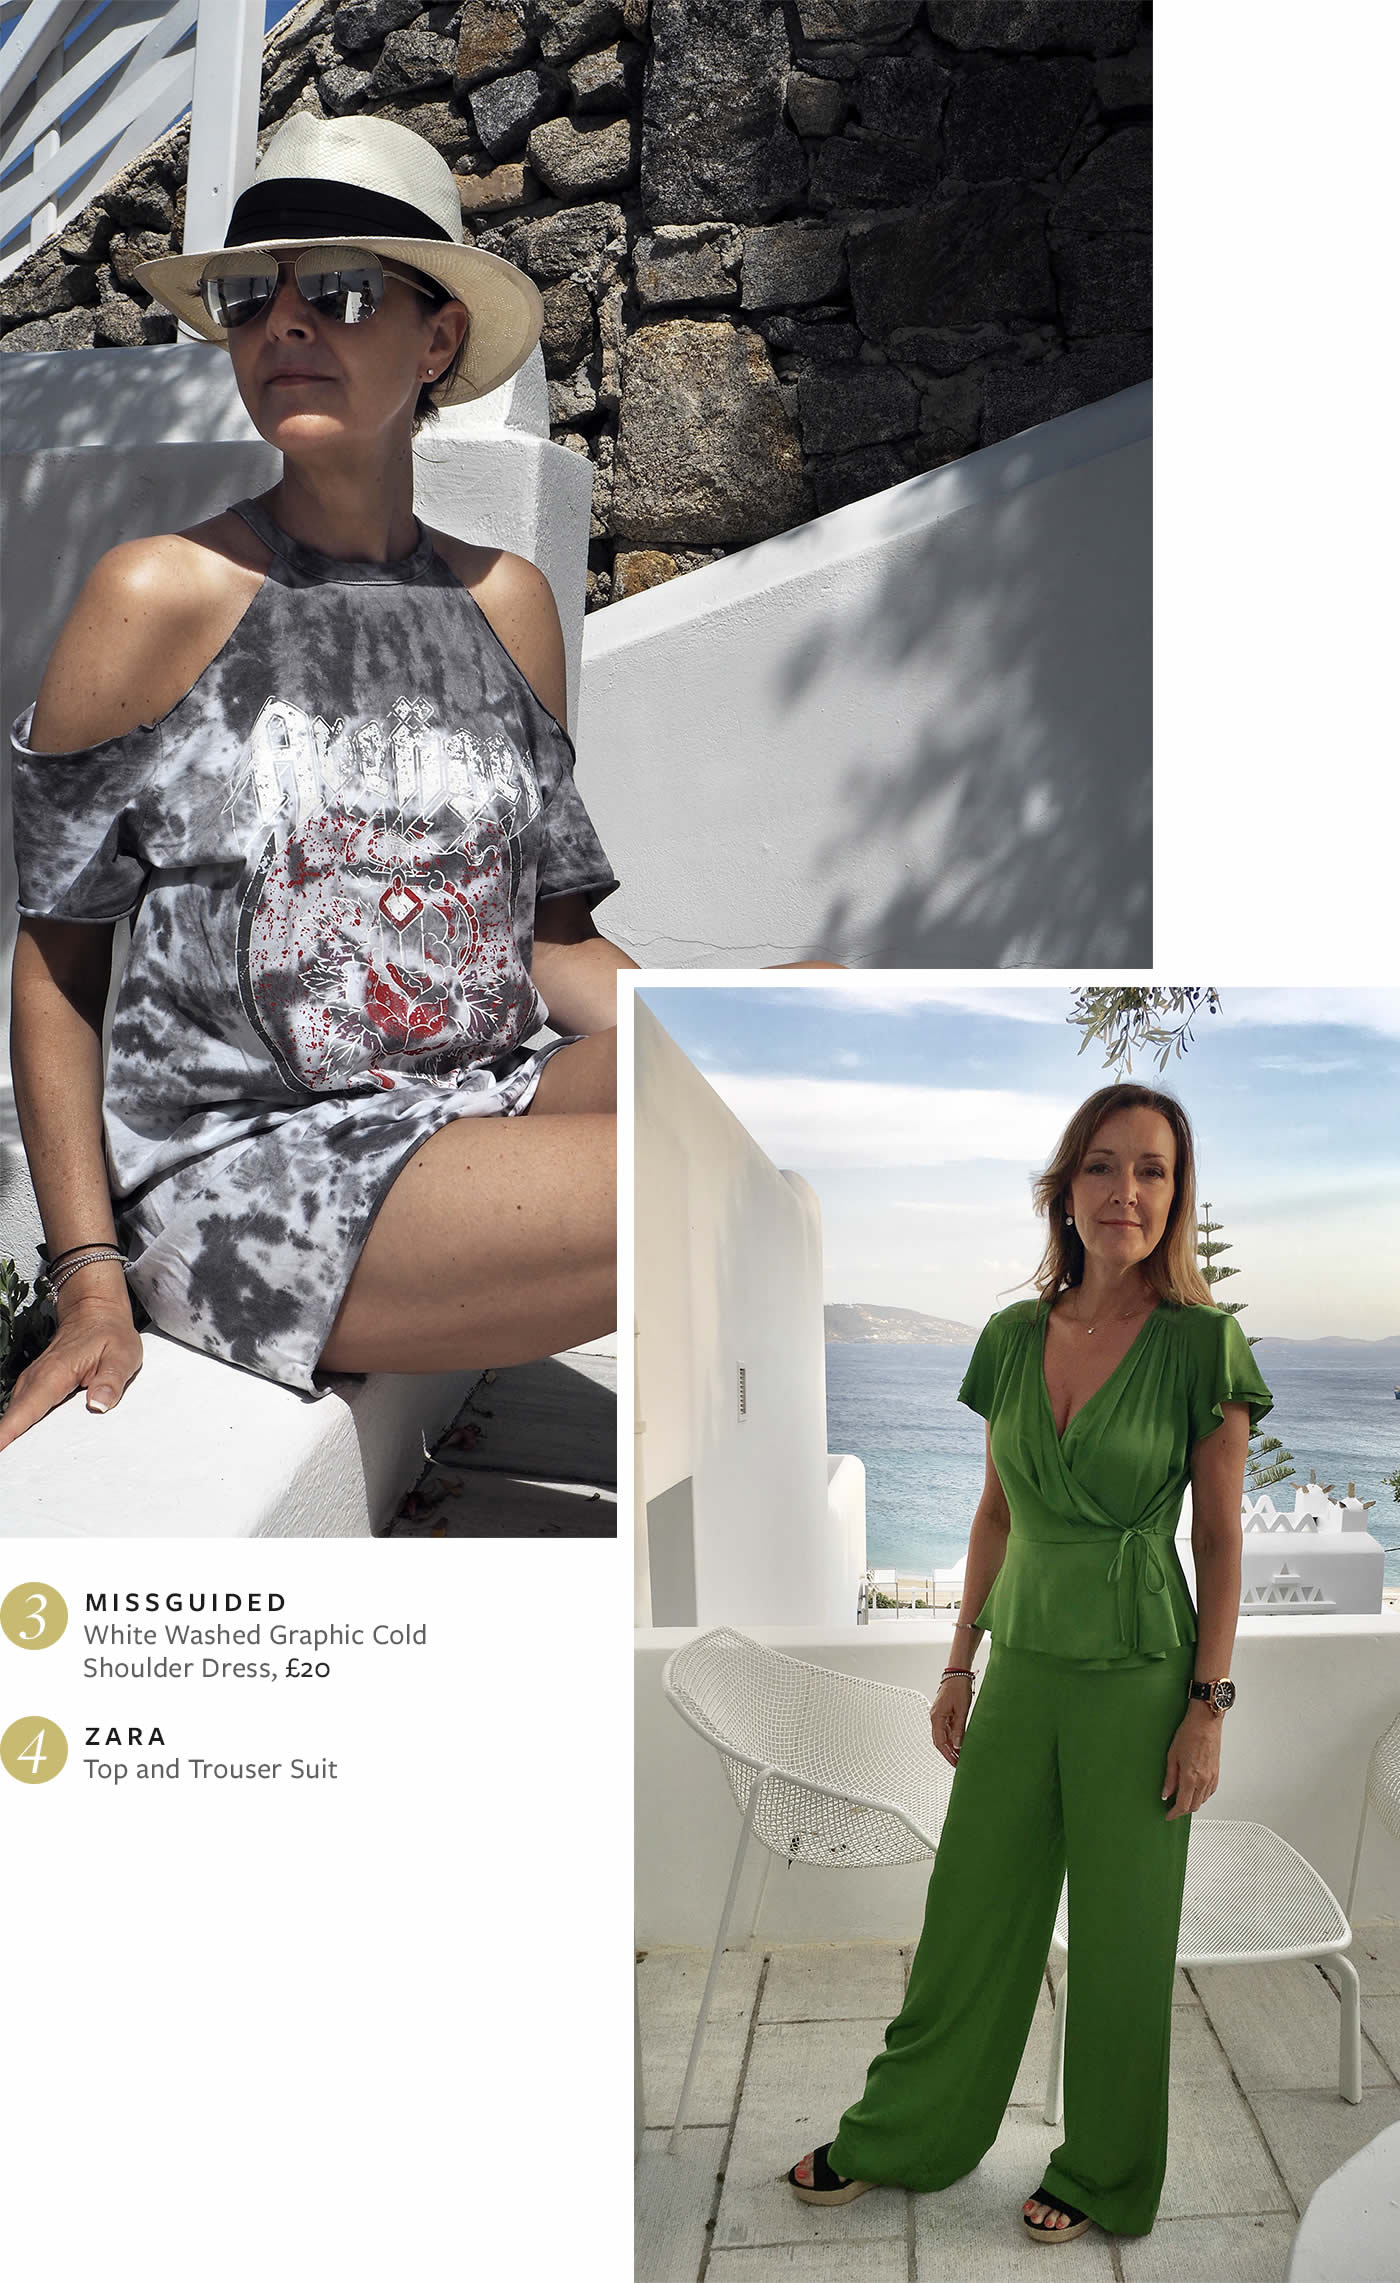 Ten days in Mykonos - Missguided and Zara